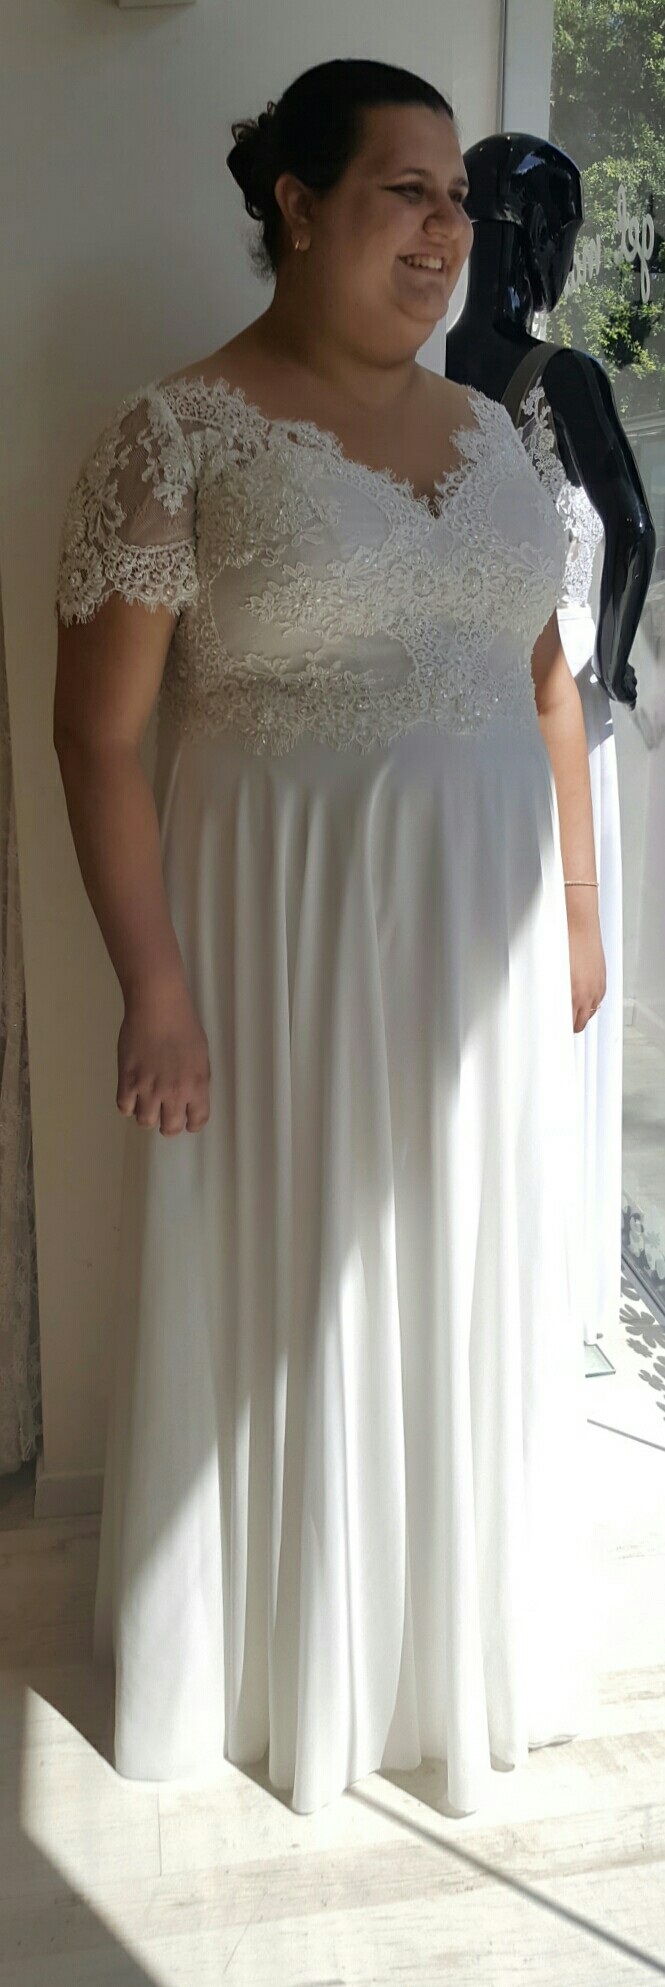 Boho bride in plus size wedding gown with short sleeves anx simple